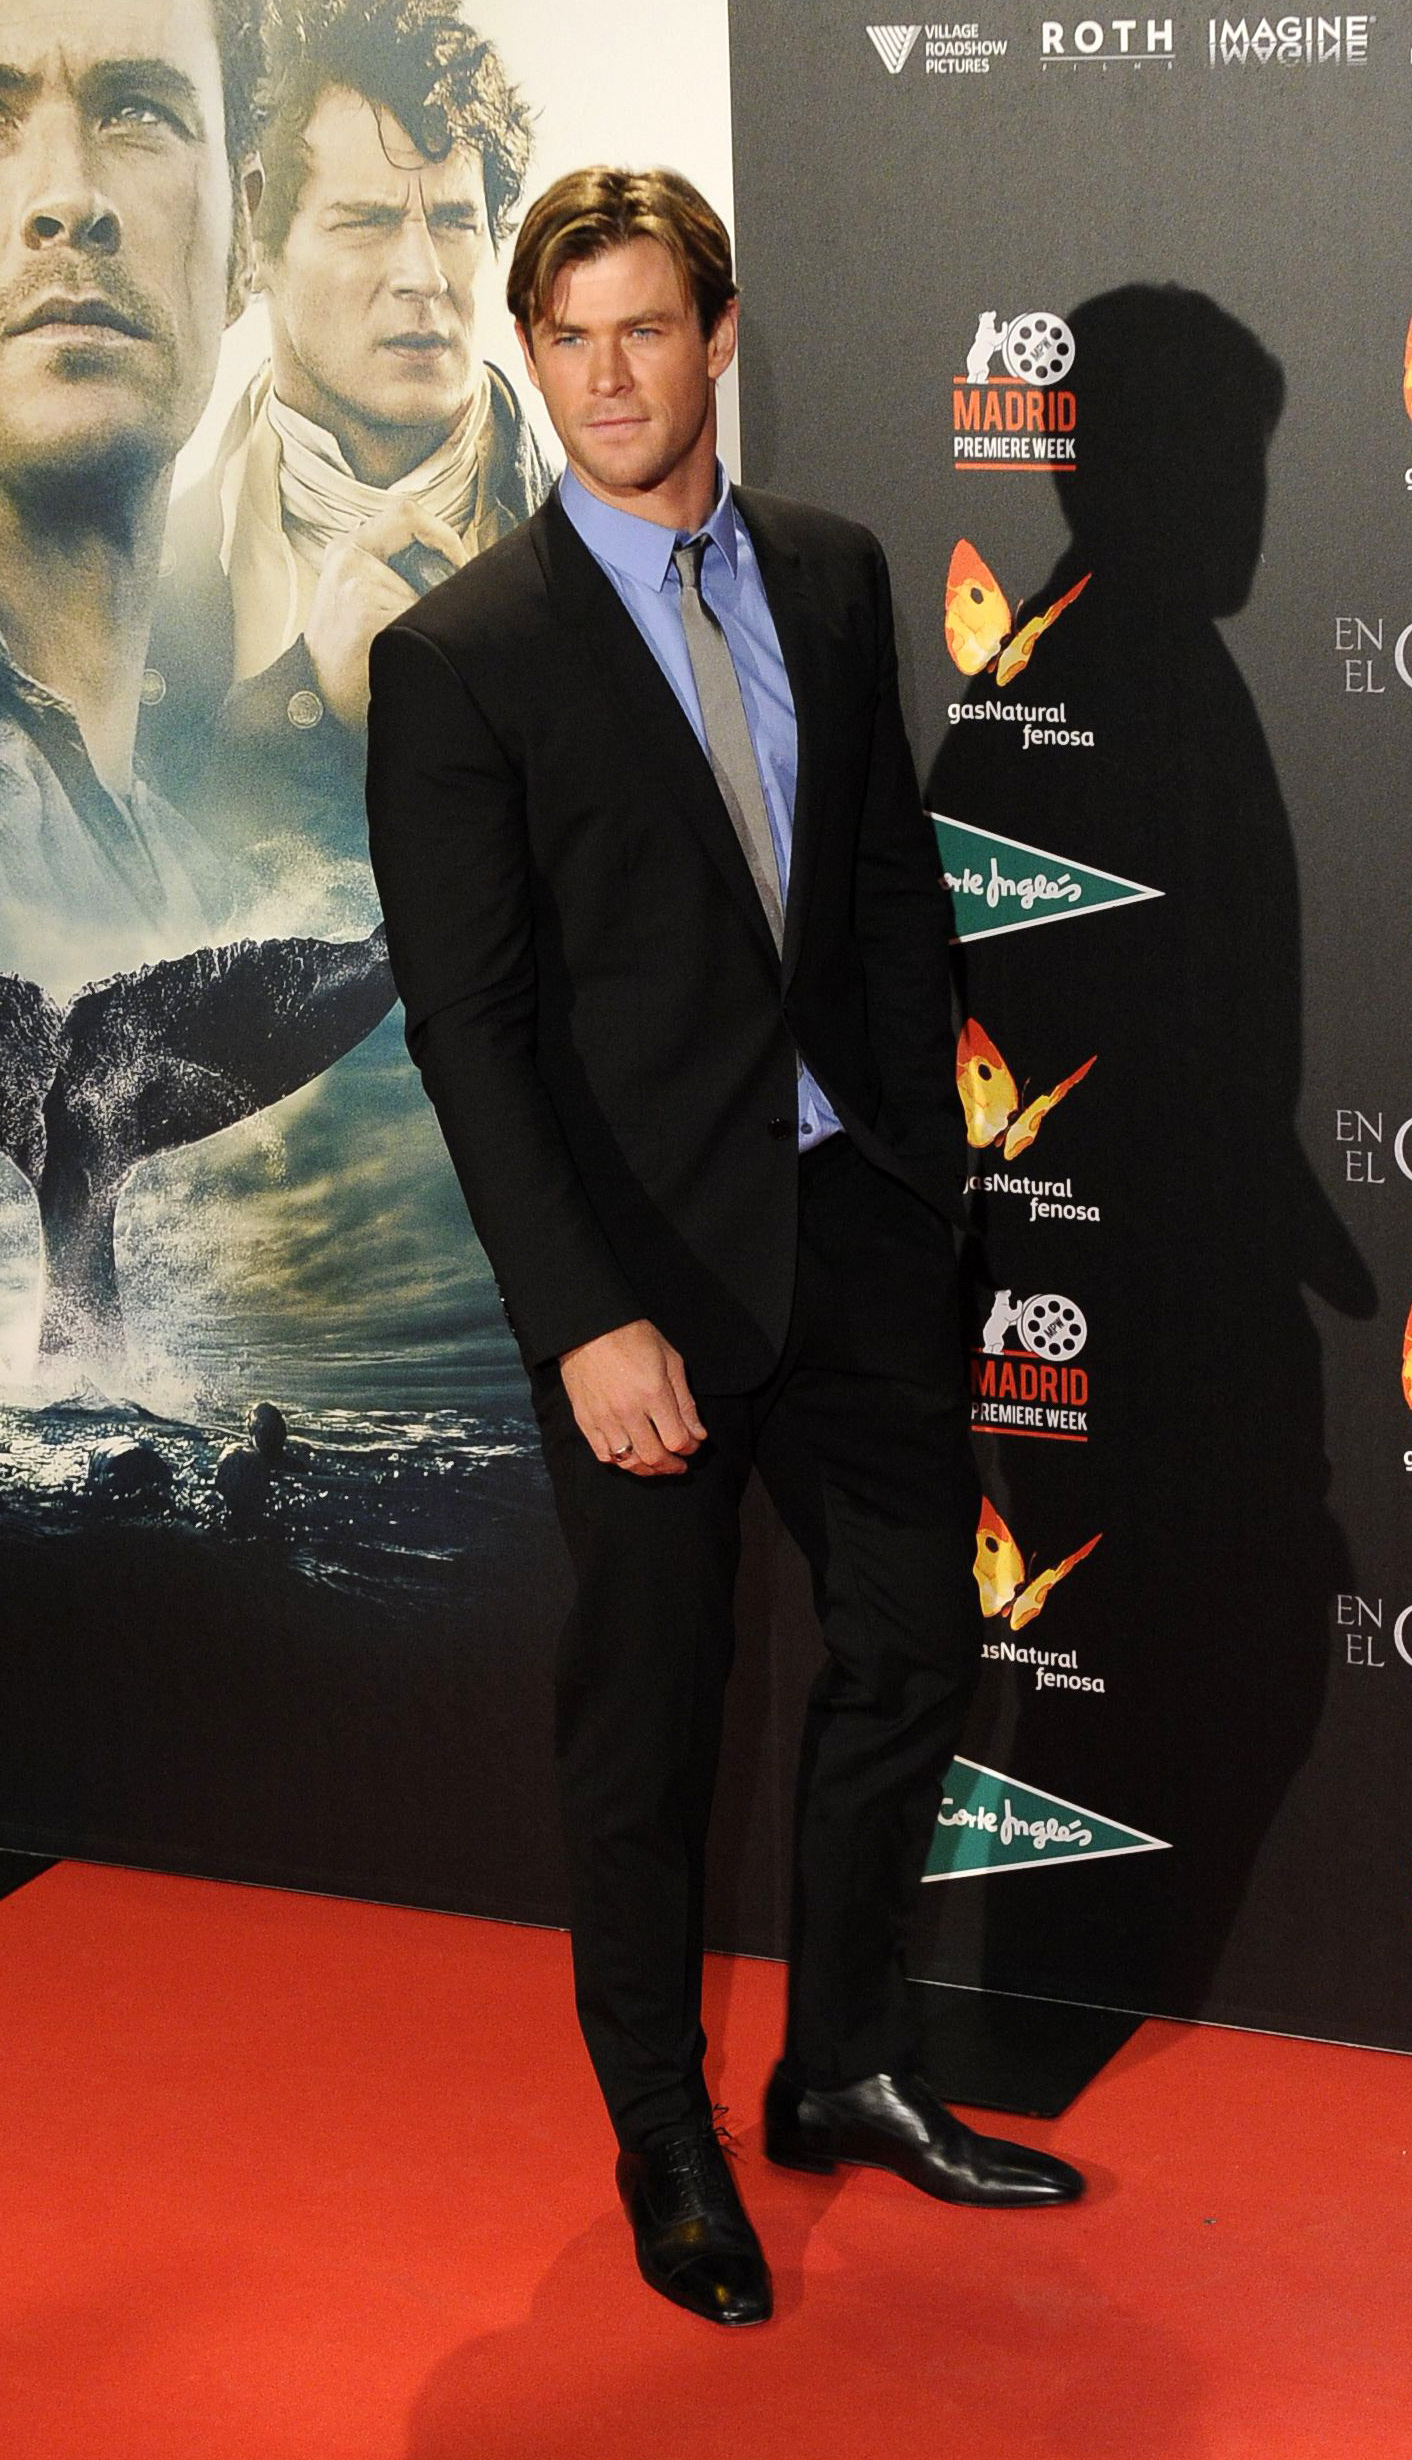 Chris Hemsworth attends 'In The Heart Of The Sea' on December 3, 2015 in Madrid, Spain.  (Europa Press--Europa Press via Getty Images)